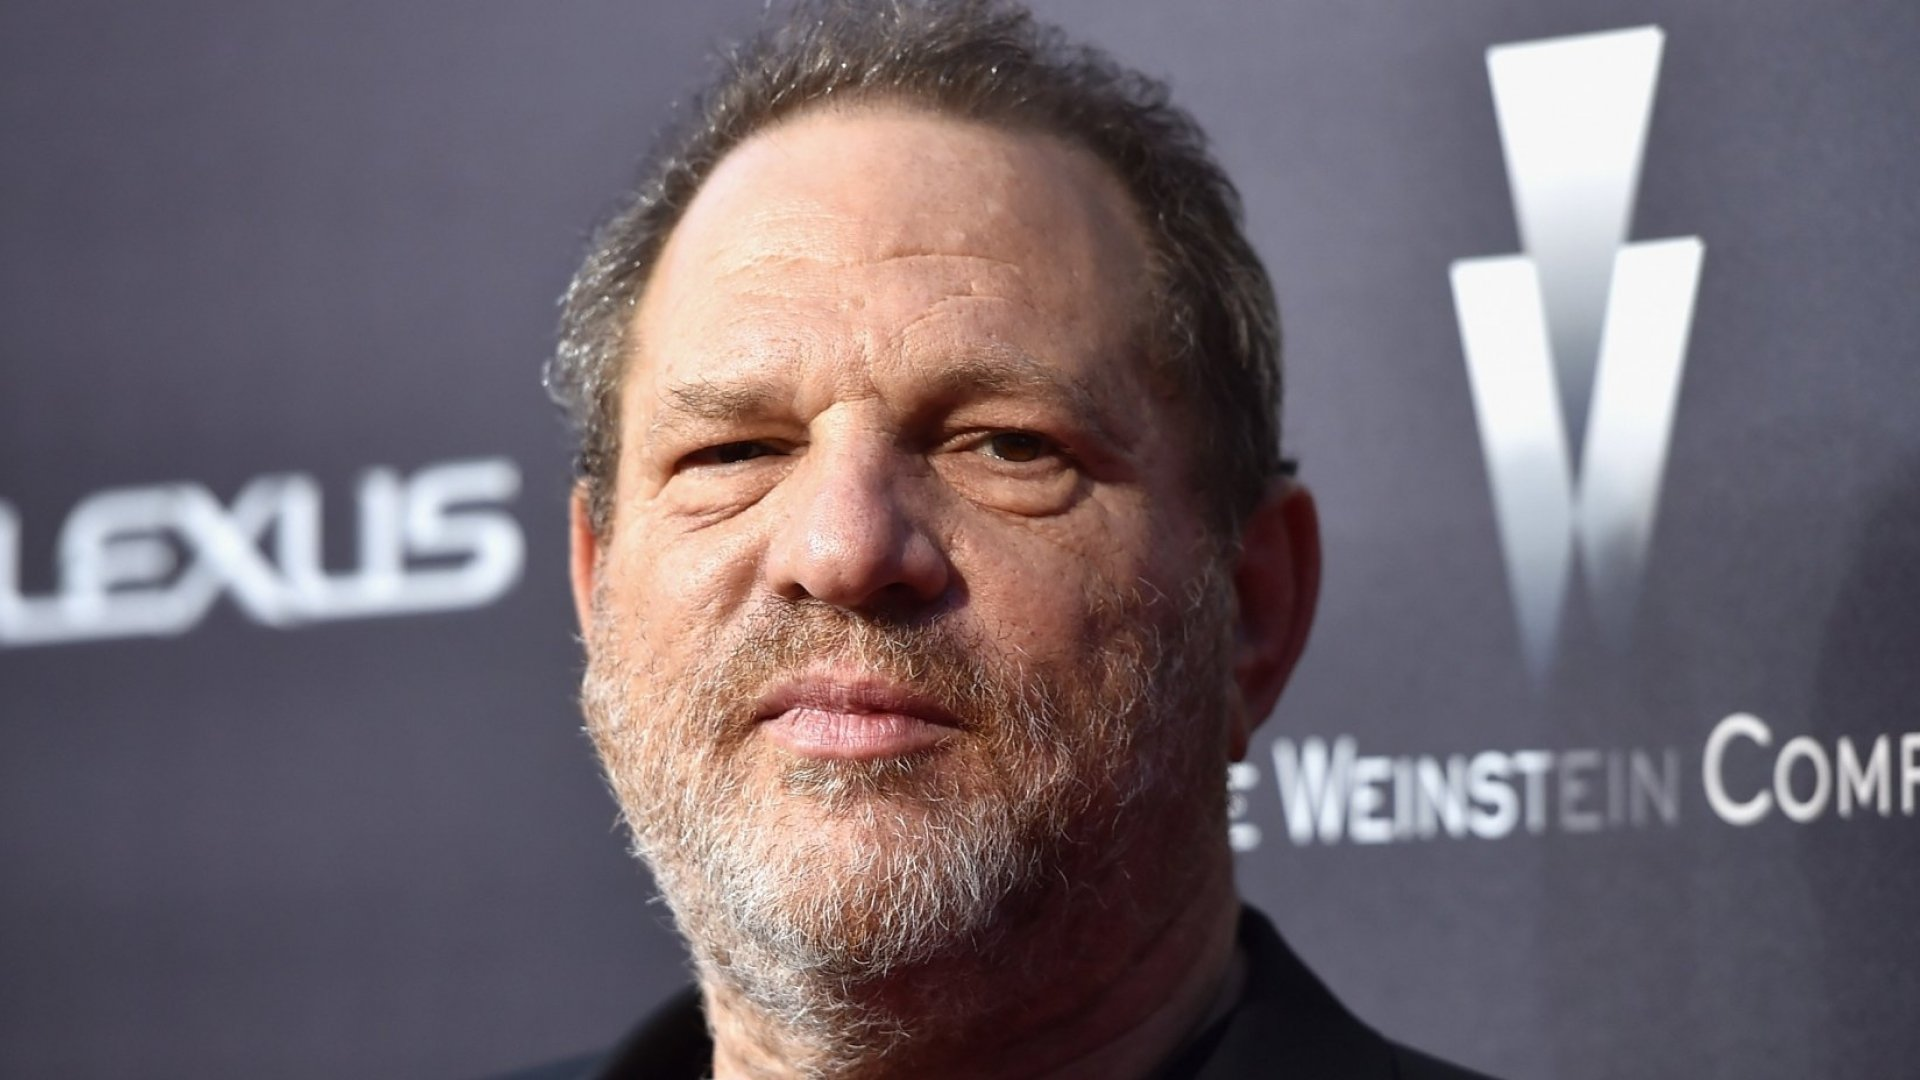 9 Reasons Why the Victims in the Harvey Weinstein Case Didn't Speak Out Earlier